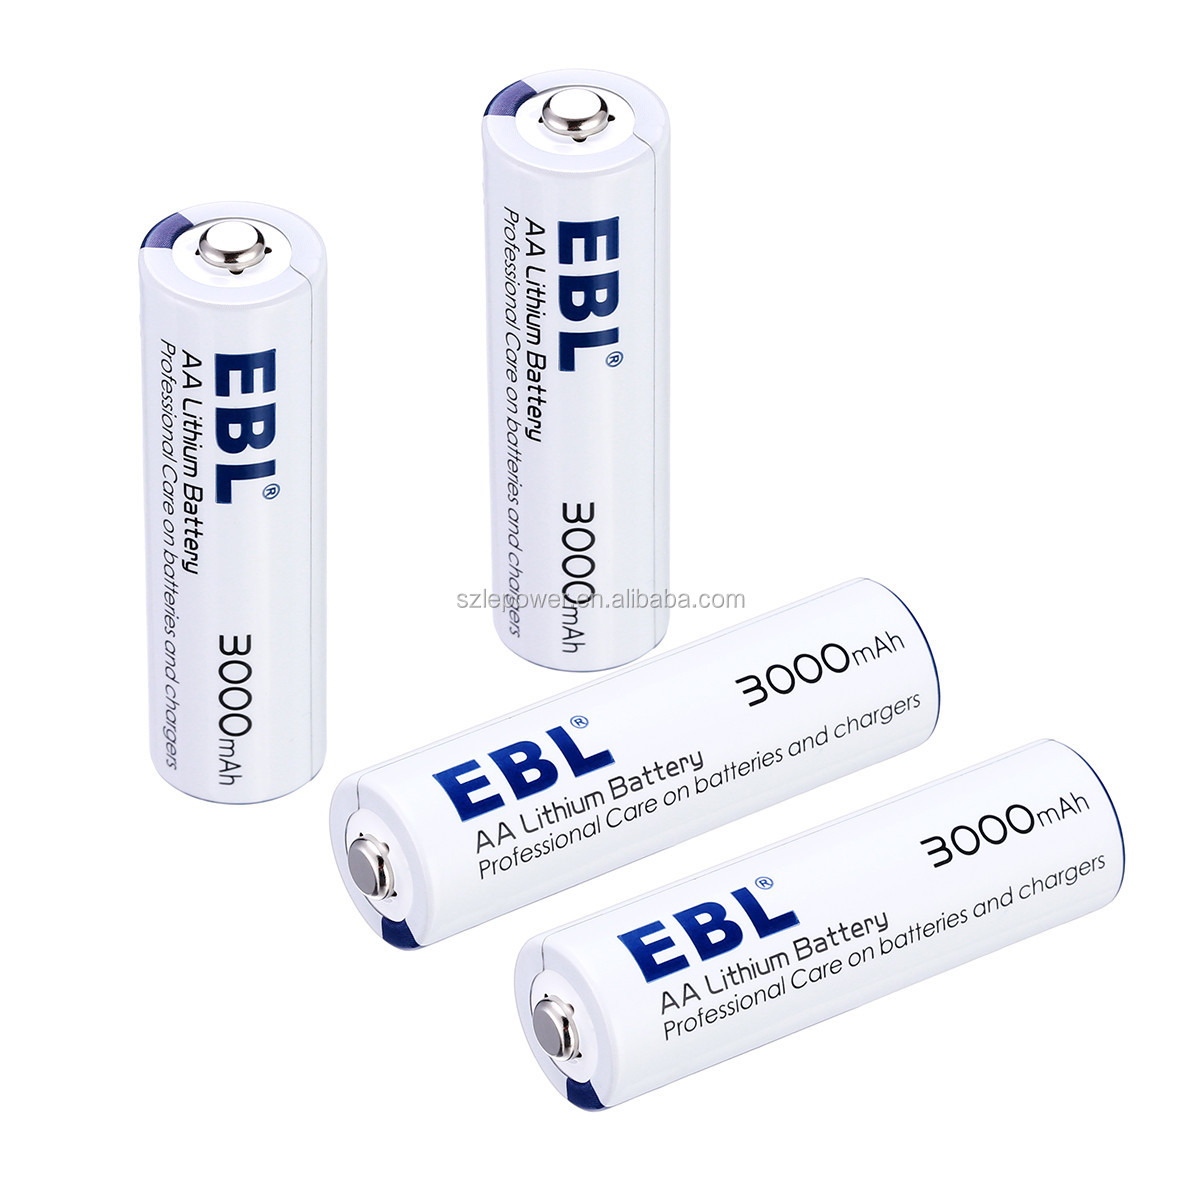 Hot Digital Batteries 1.5V 3000mAh AA No-rechargeable Lithium Battery